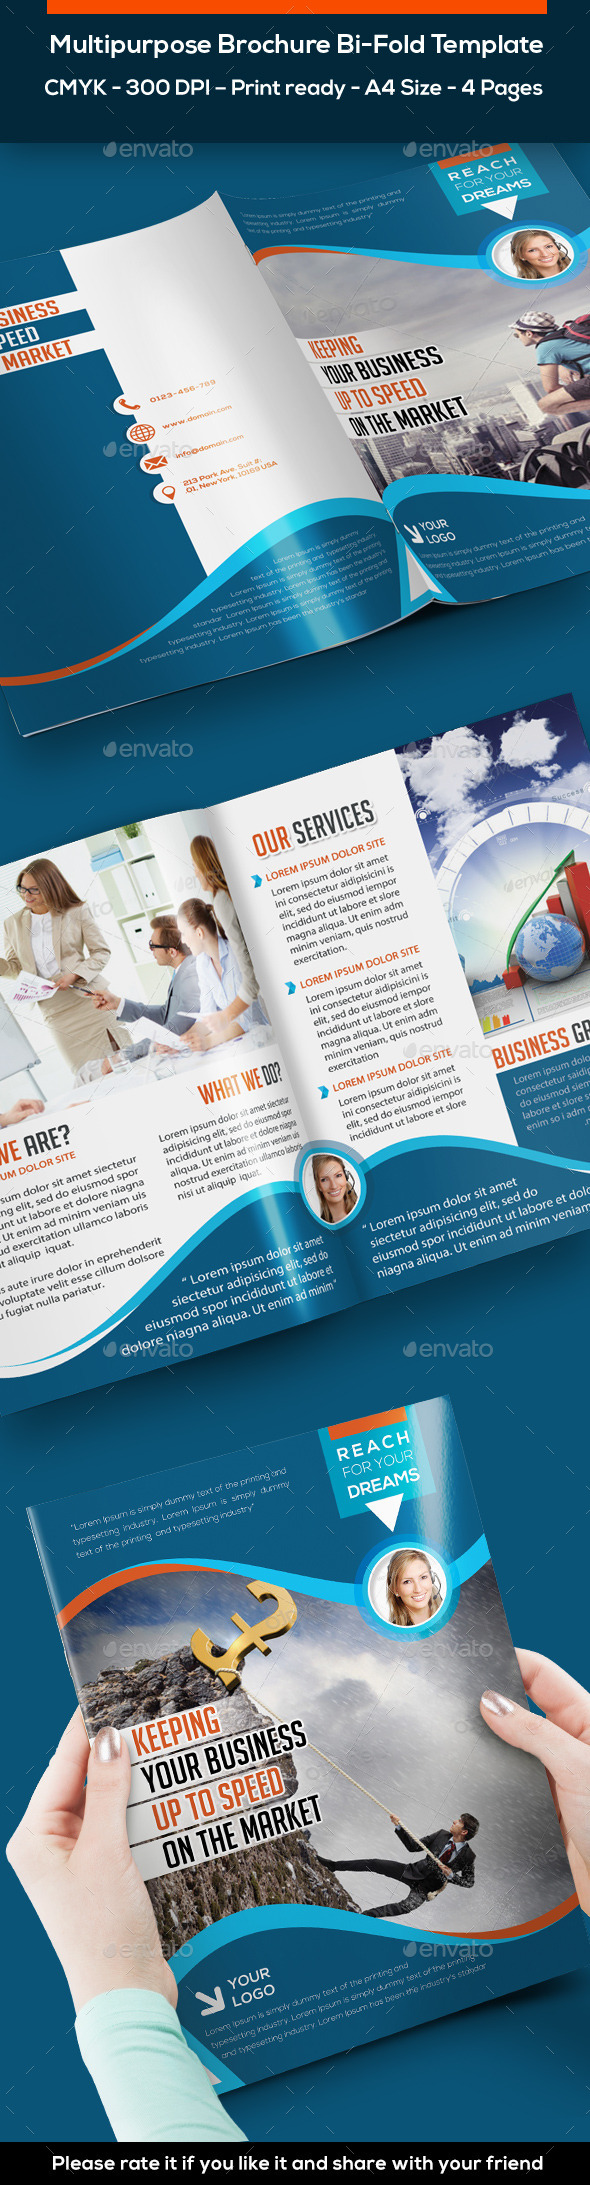 Bi-fold Brochure Template 4 Pages - Print Templates